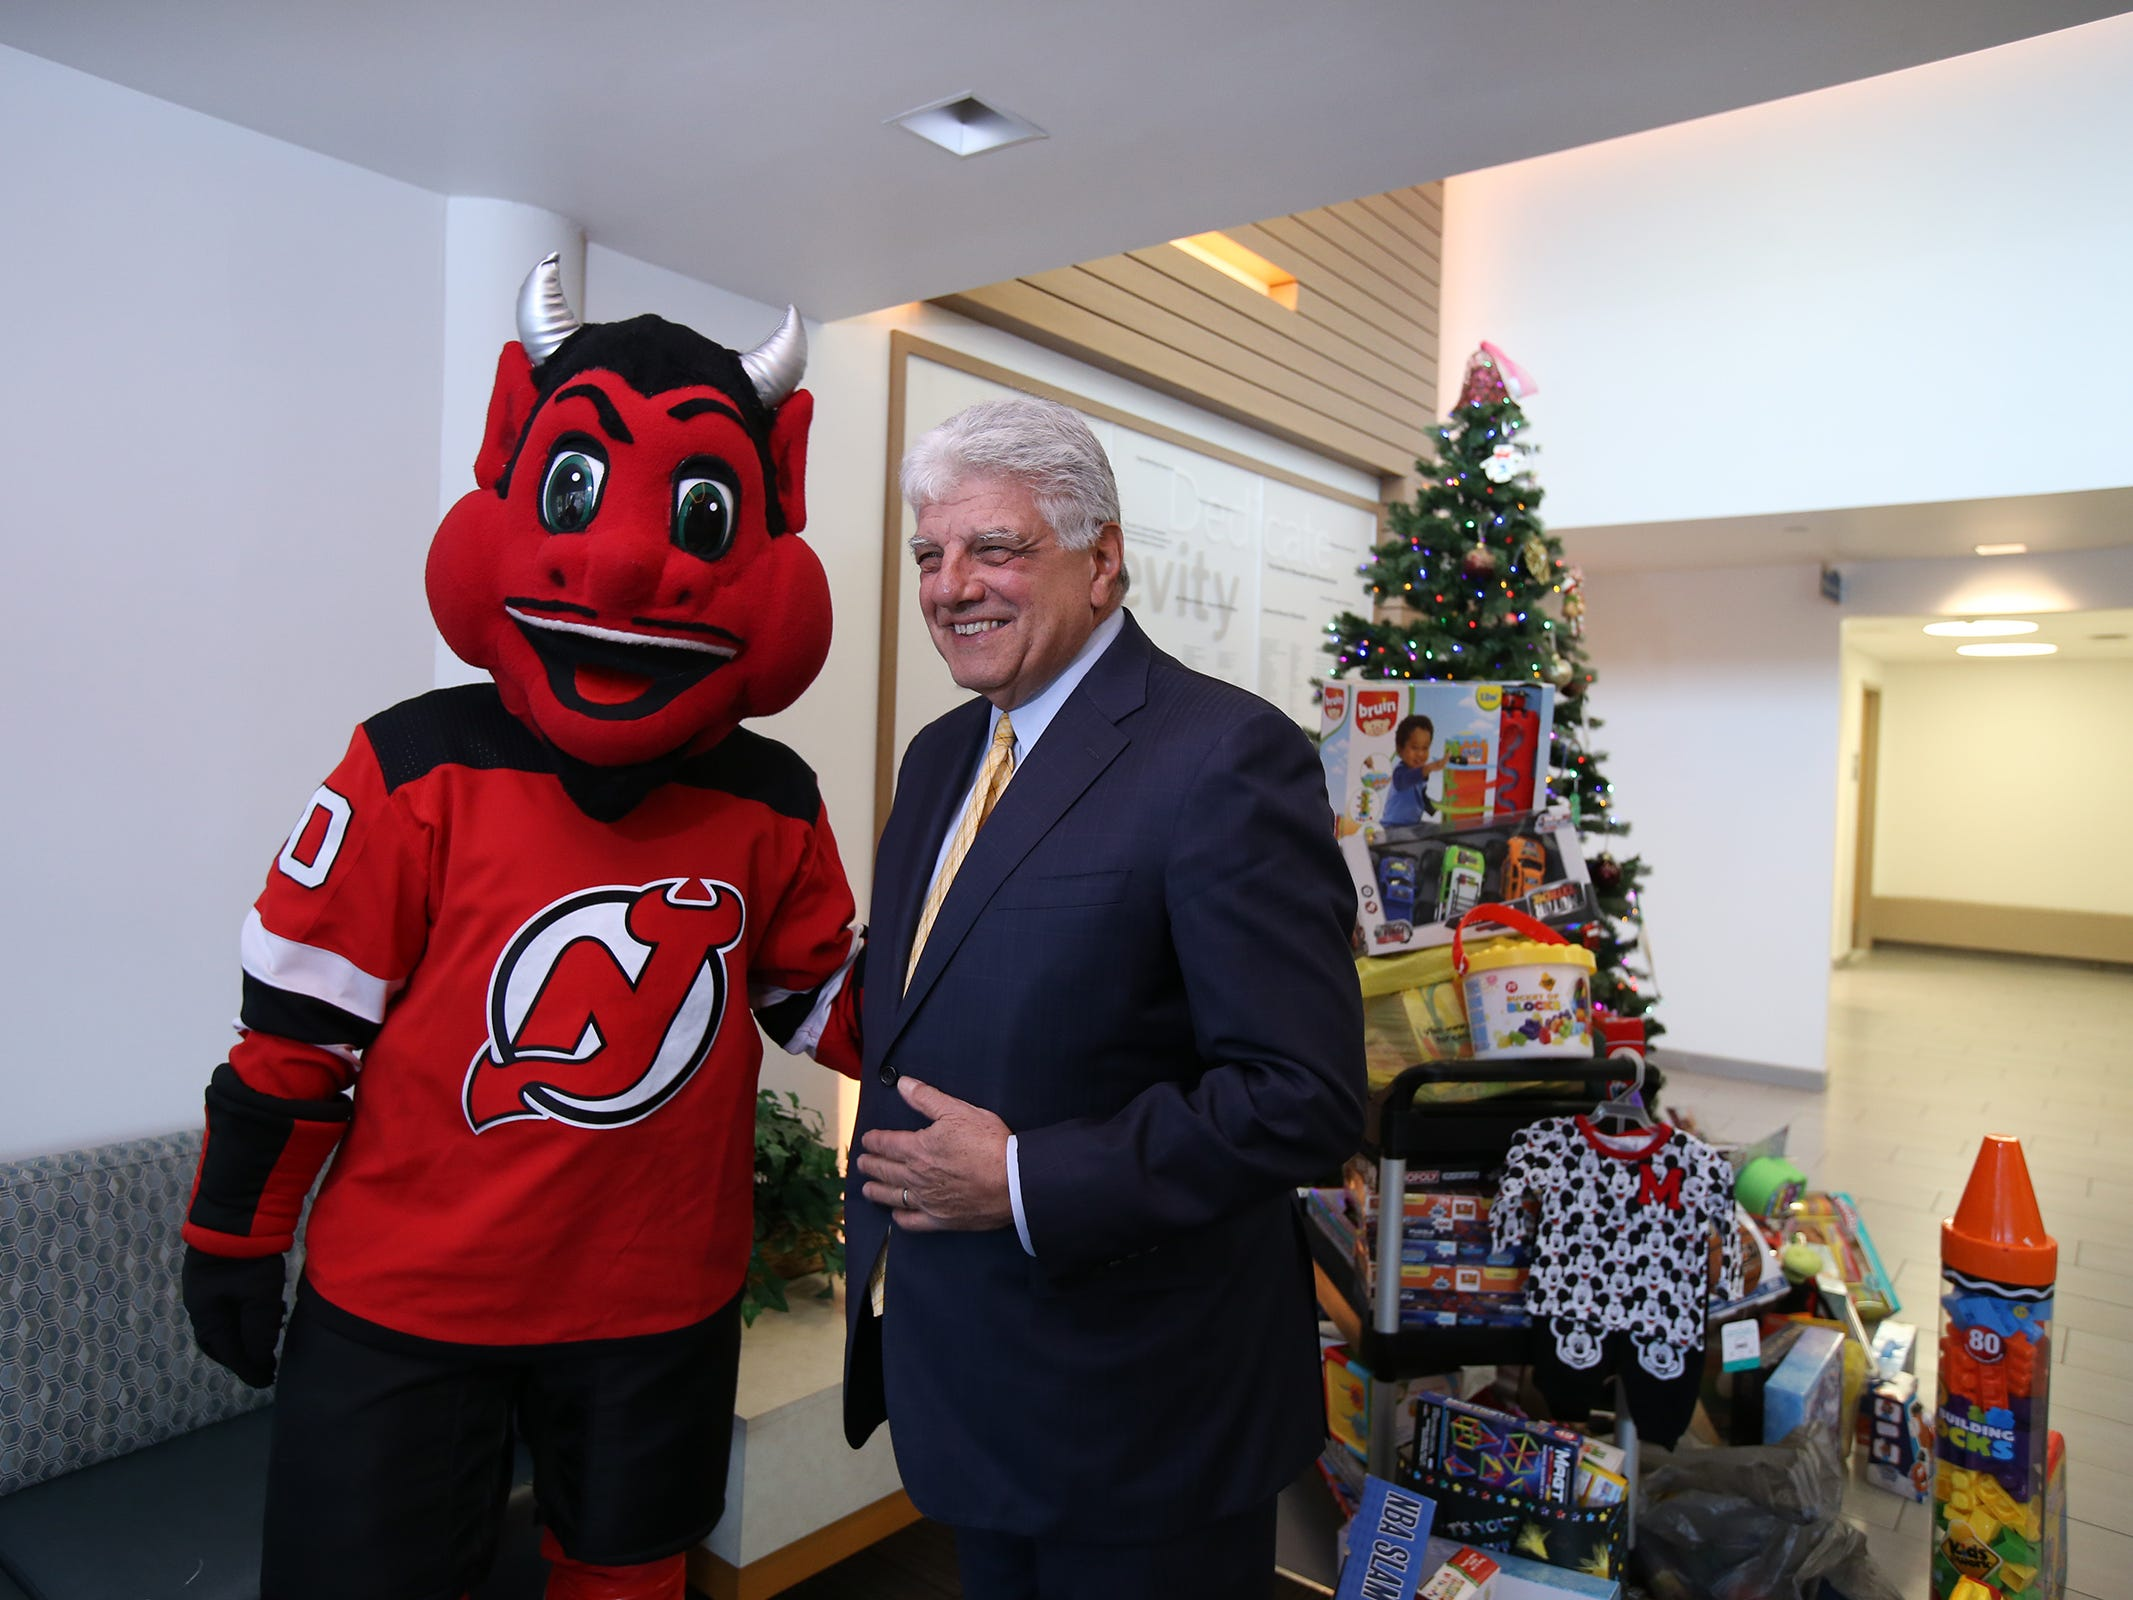 The New Jersey Devils' mascot greets Dr. Frank Vozos, president and CEO of Monmouth Medical Center Southern Campus, during a visit to the Monmouth Medical Center Southern Campus in Lakewood, NJ Monday, December 17, 2018. During his visit, he loaded donated toys into a police car with members of the Lakewood PBA and Lakewood Police Department.